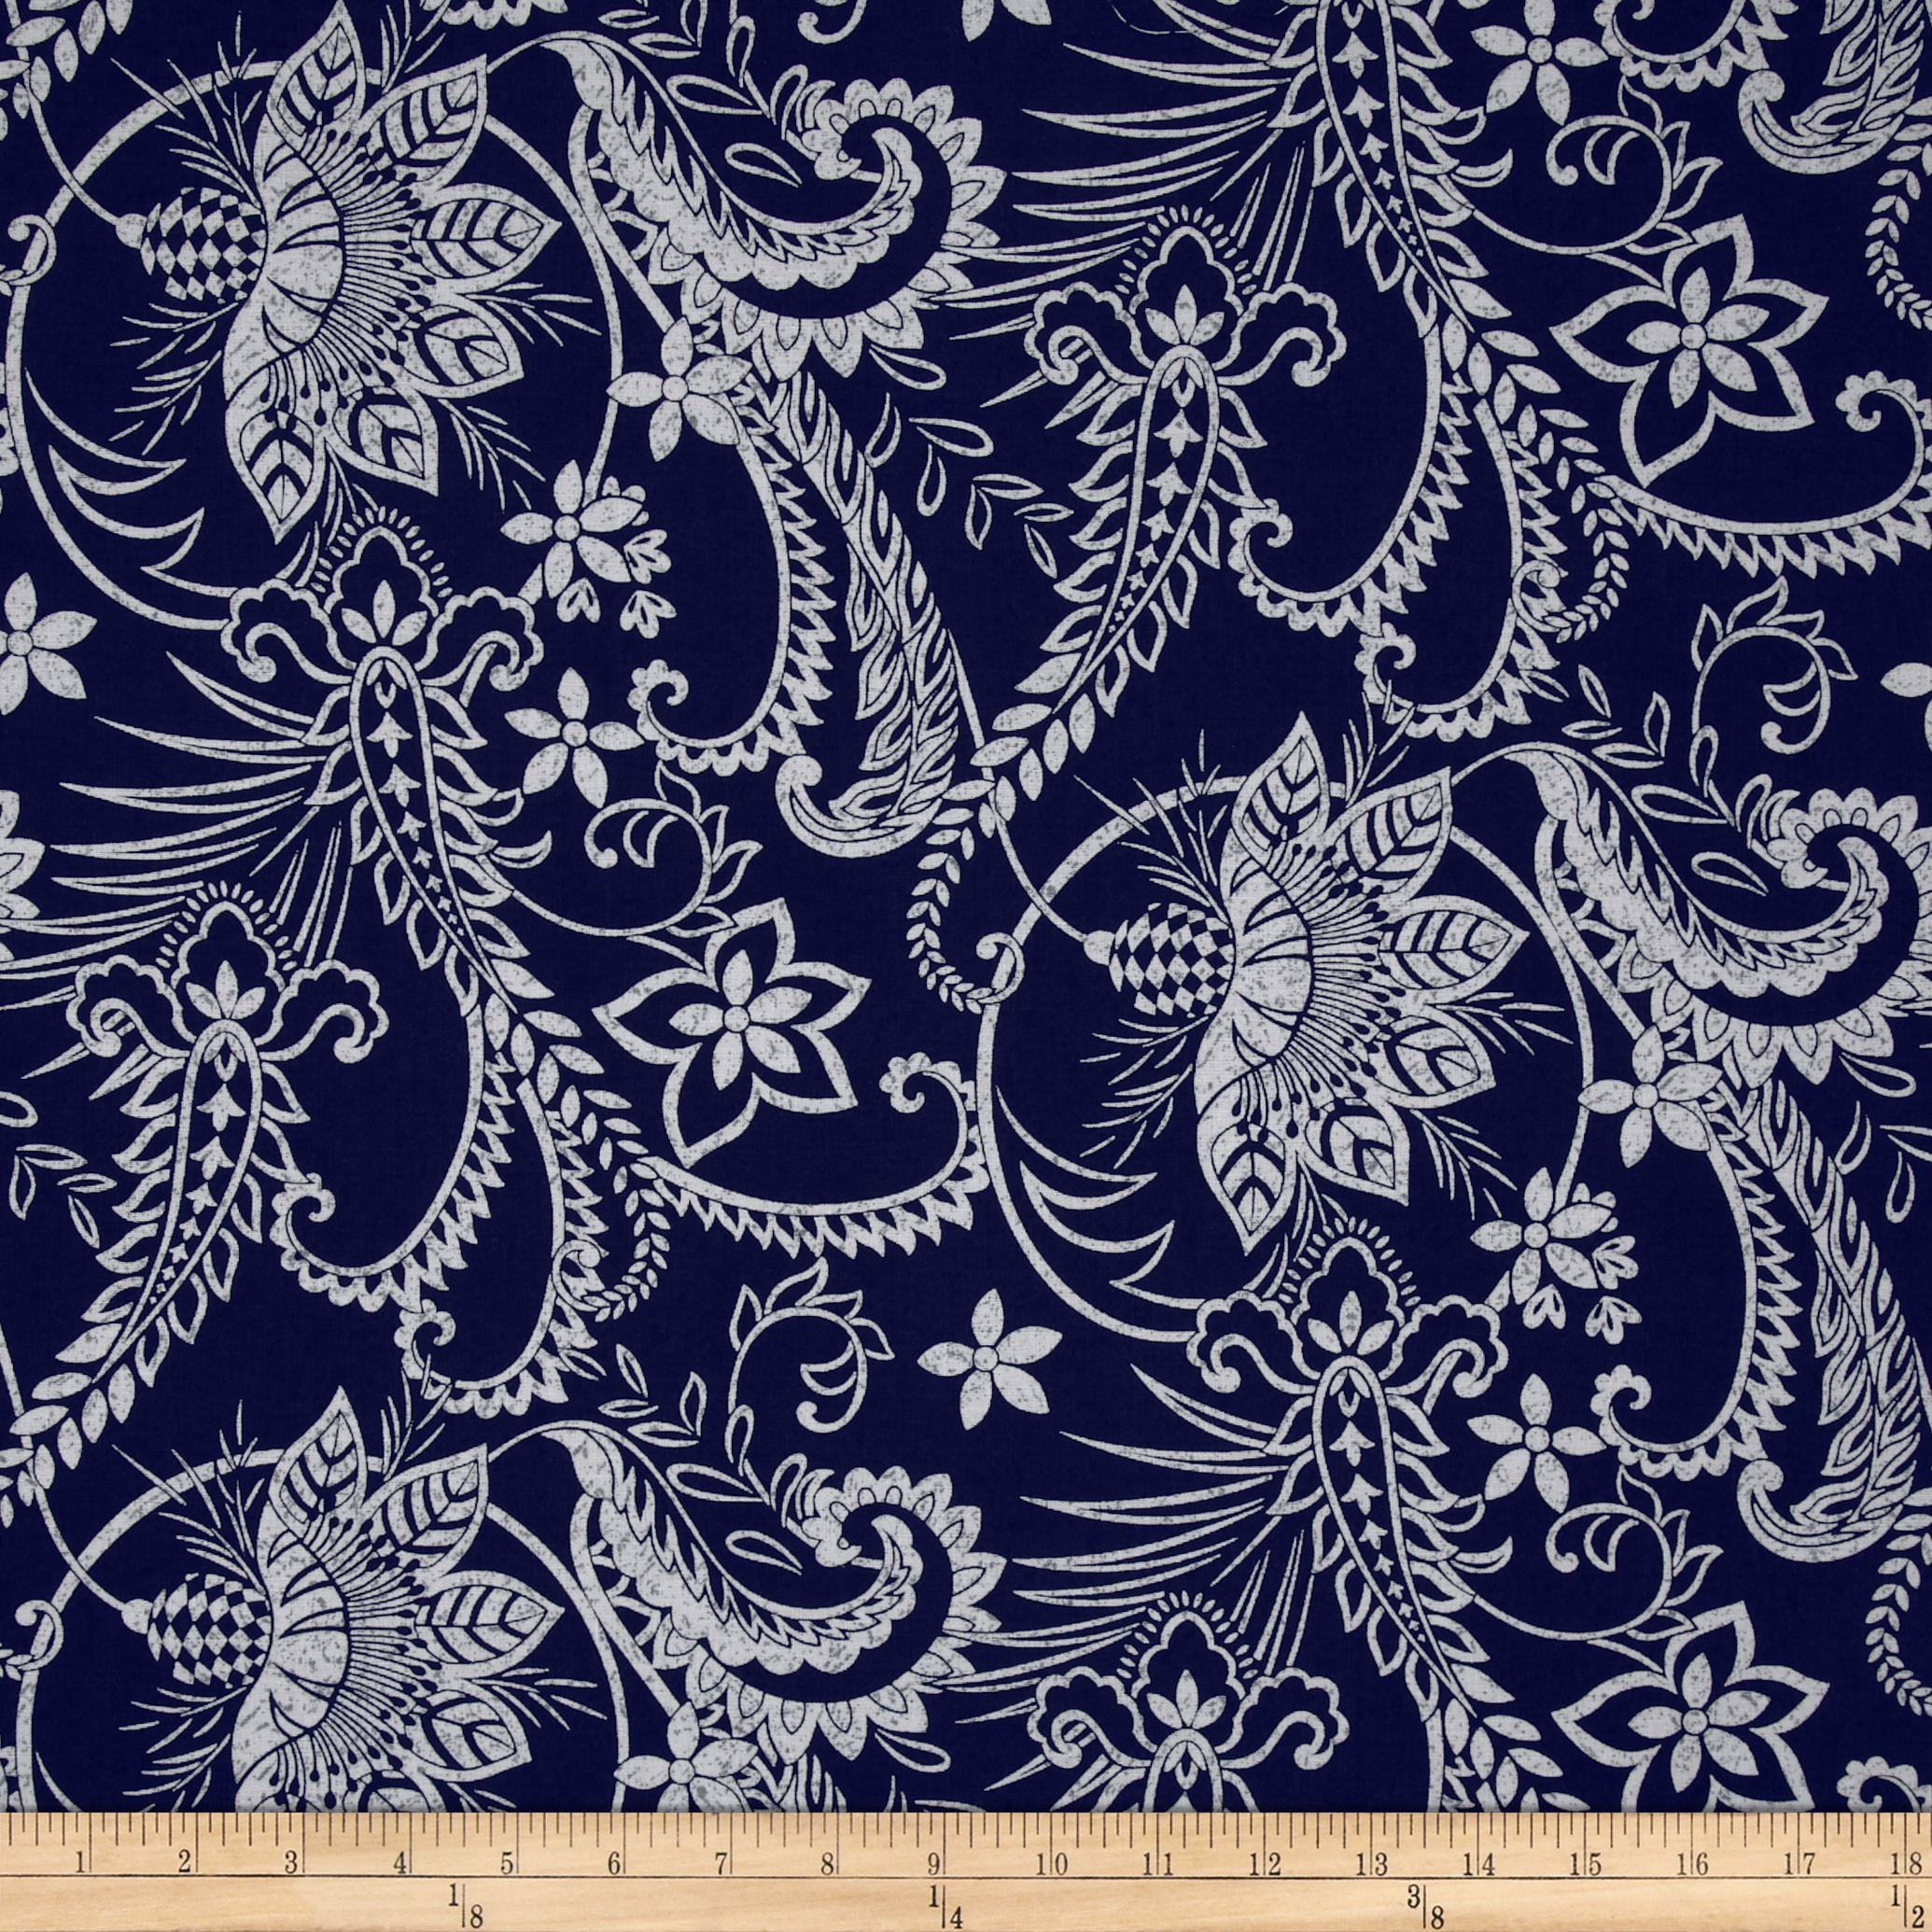 Indigo Blues Large Leaves & Vines Blue Fabric